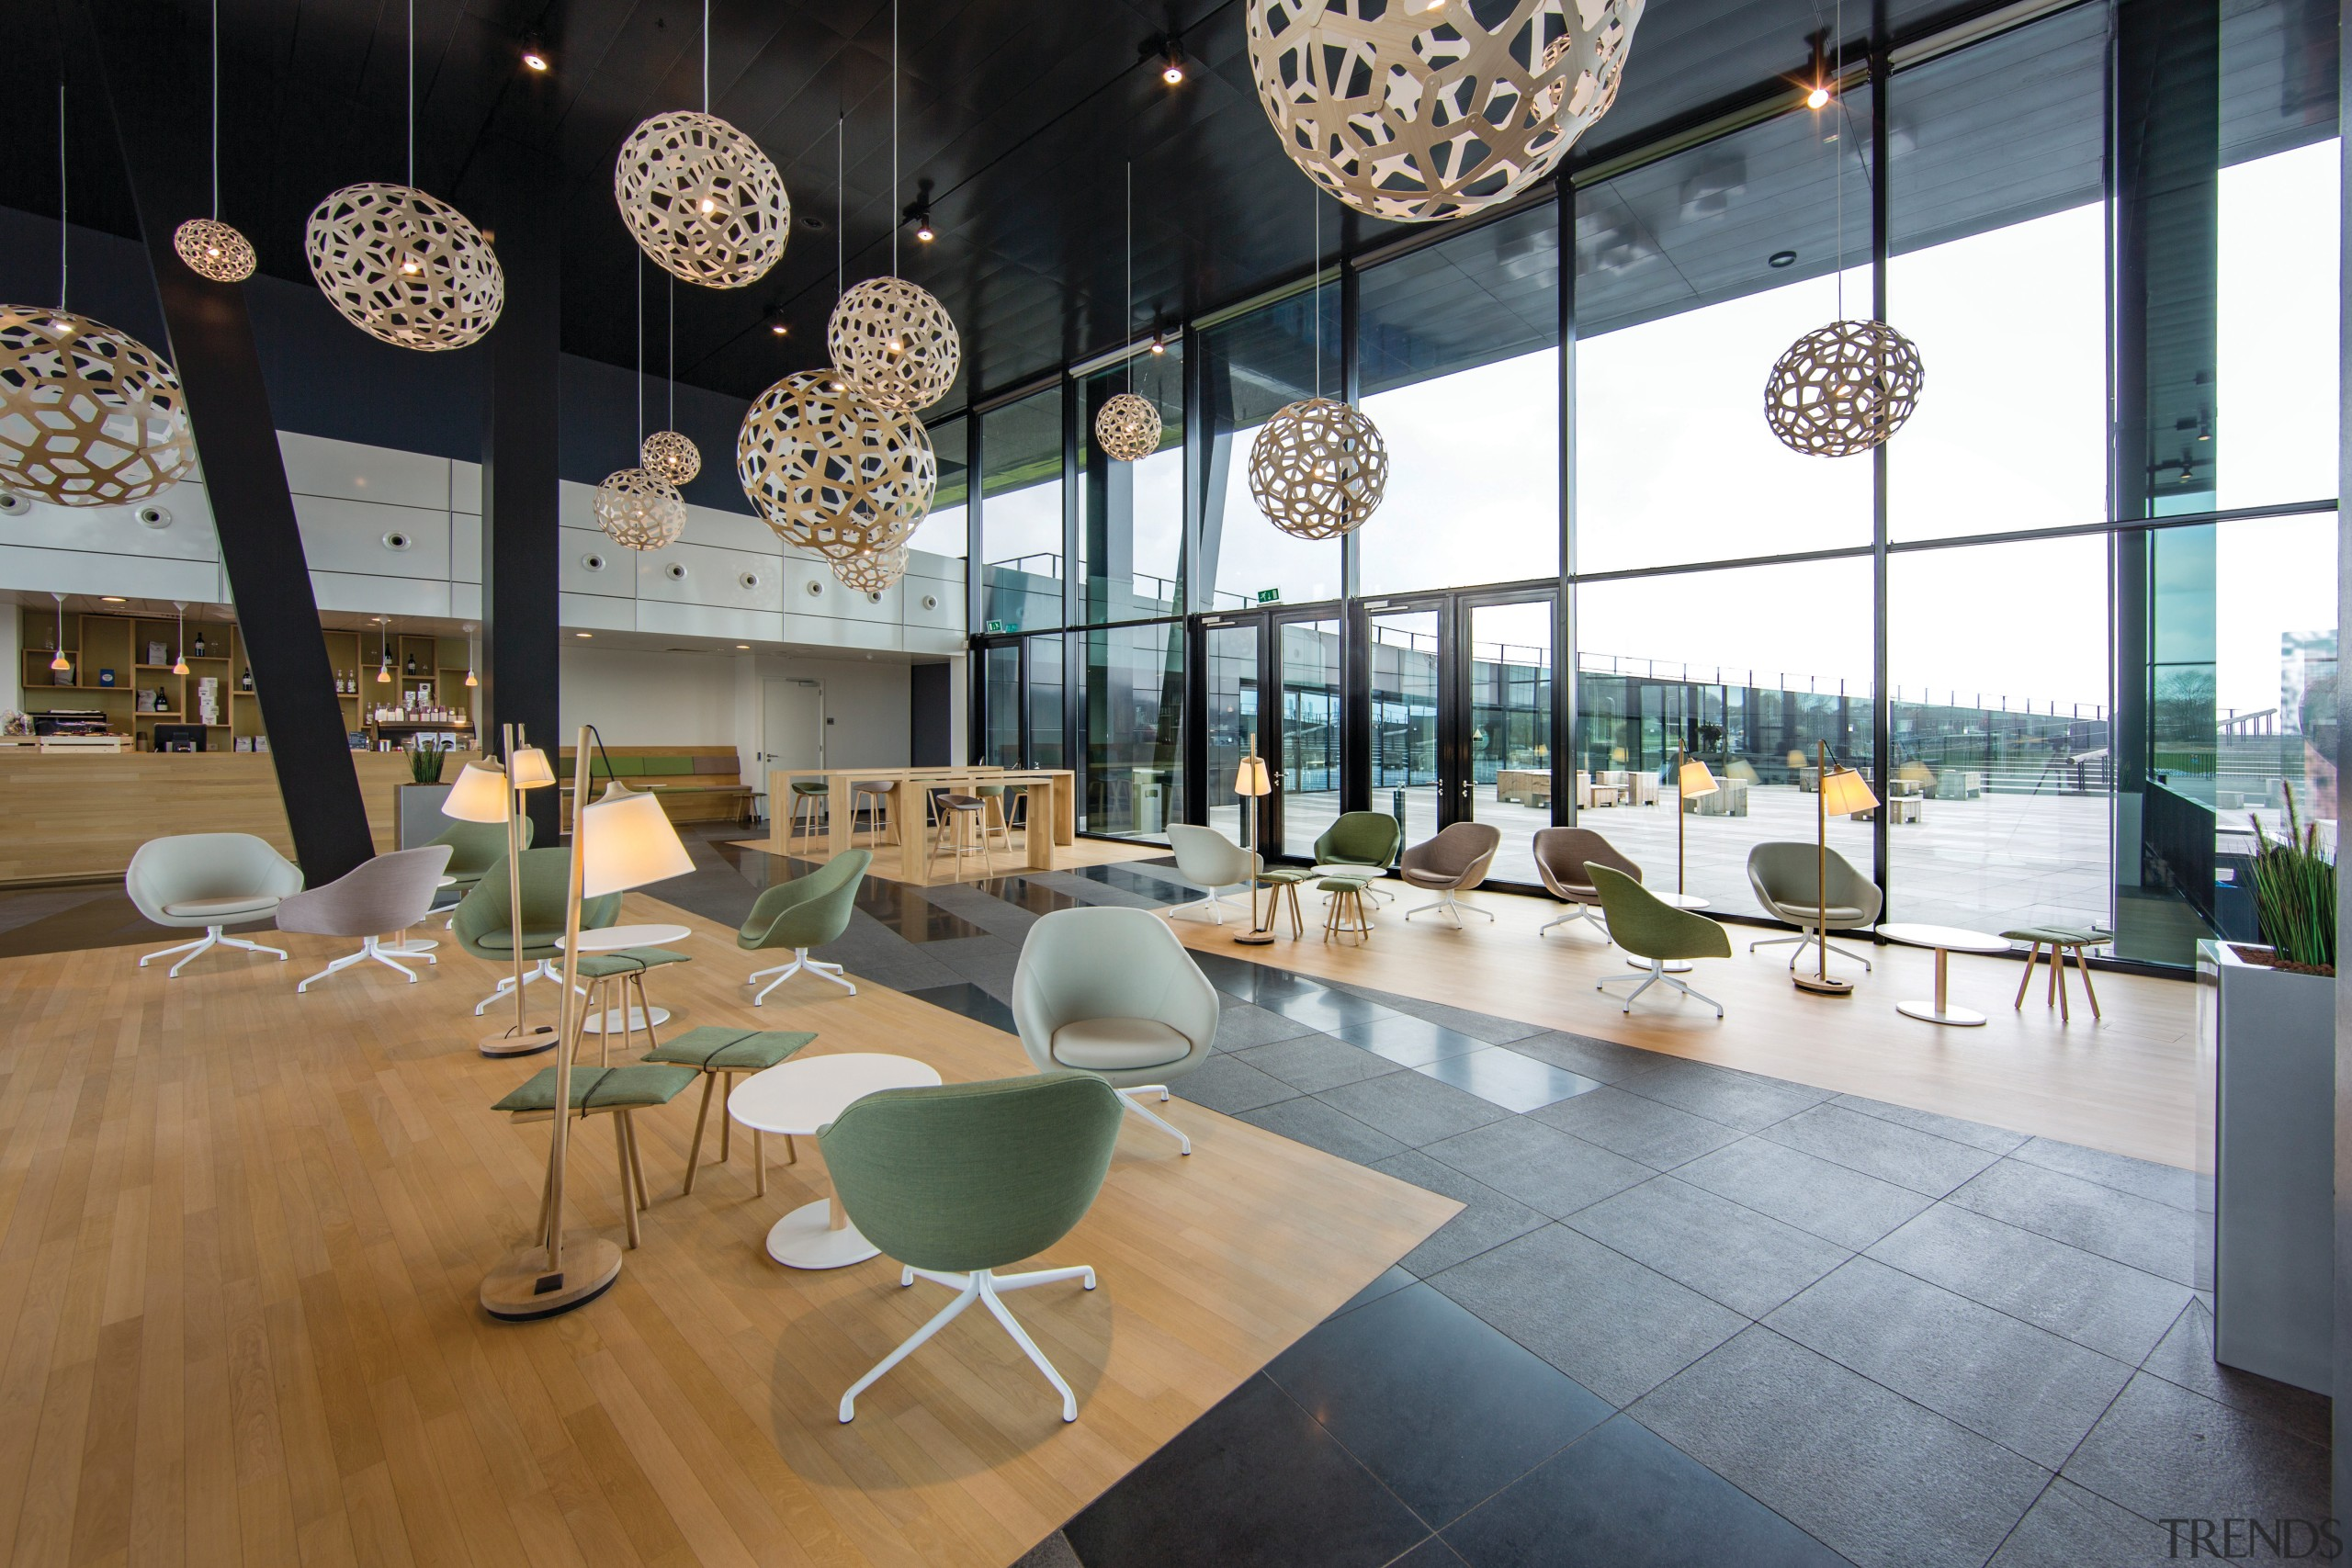 Physical settings that encourage informal or casual interaction architecture, furniture, interior design, lobby, table, gray